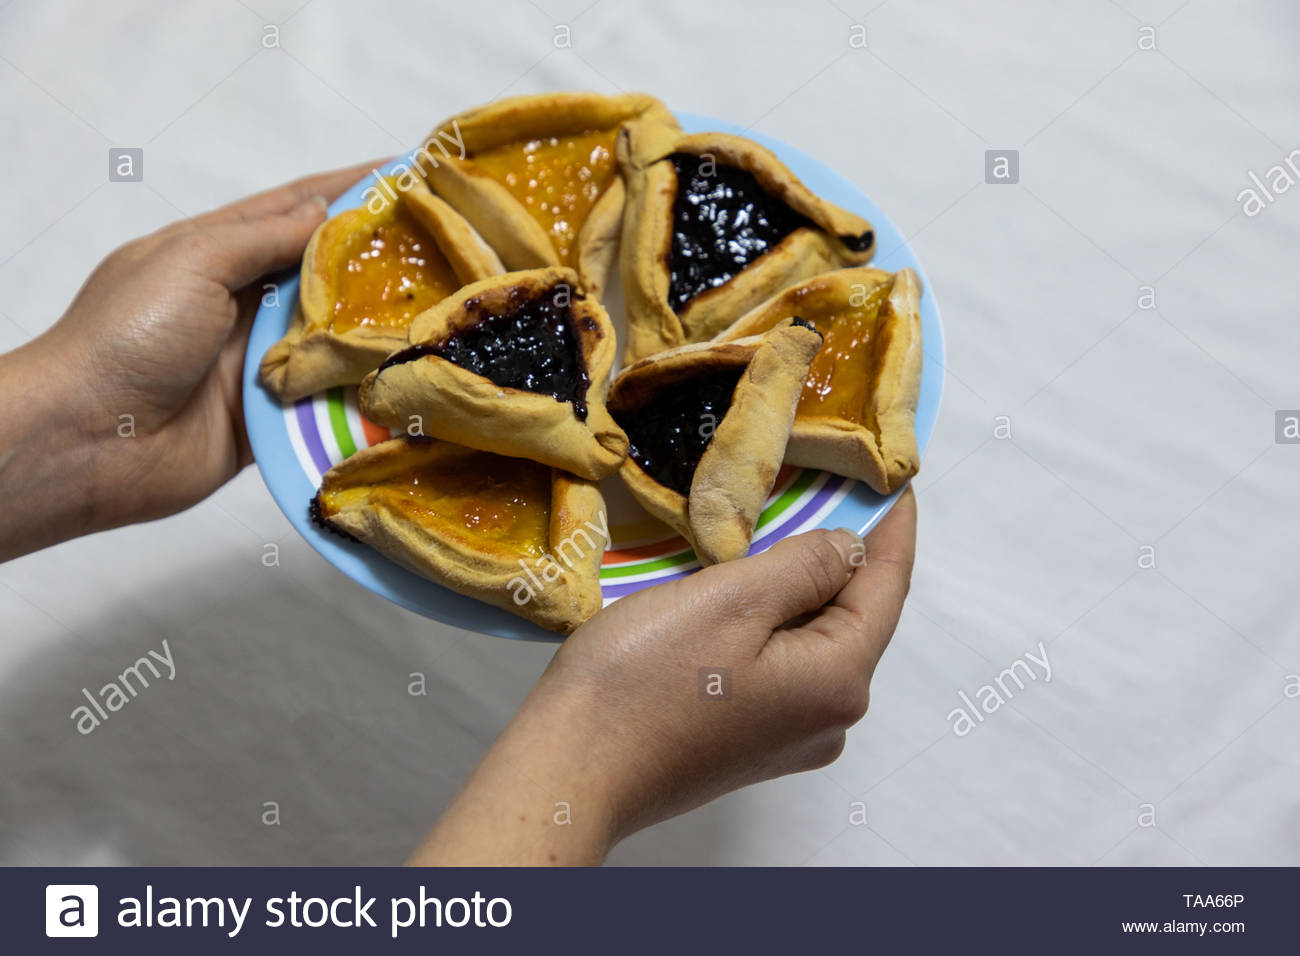 Woman hands holding colorful plate with apricot and blueberry hamantash Purim cookies - Stock Image